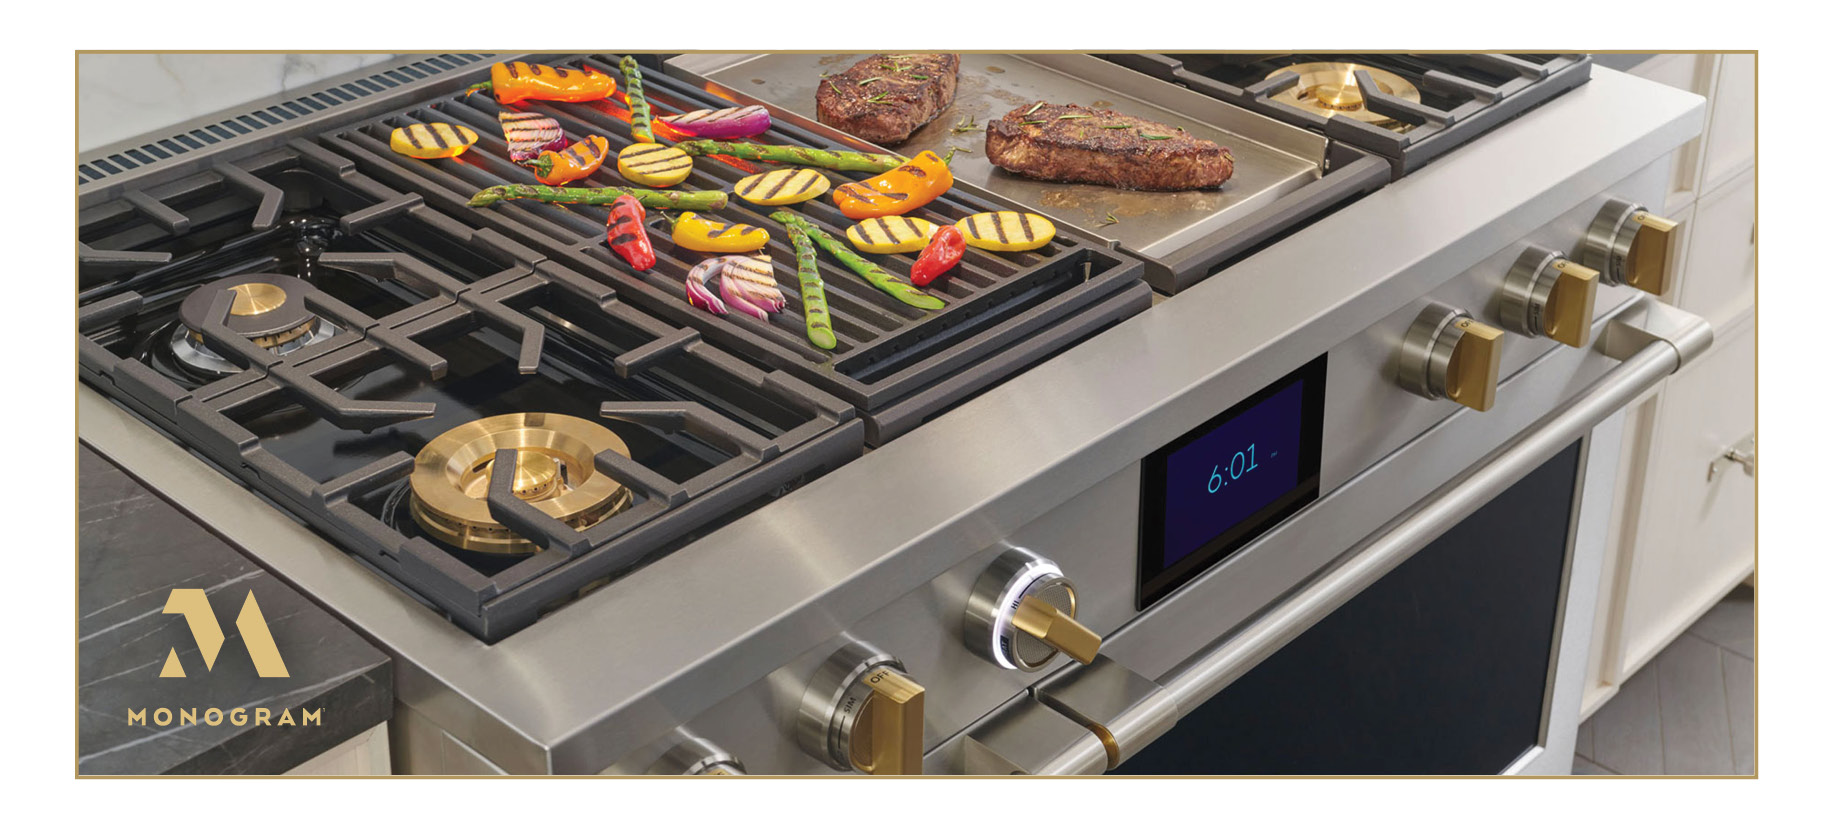 Monogram Professional Range in silver with brass knobs. Steak and vegetables are grilling.